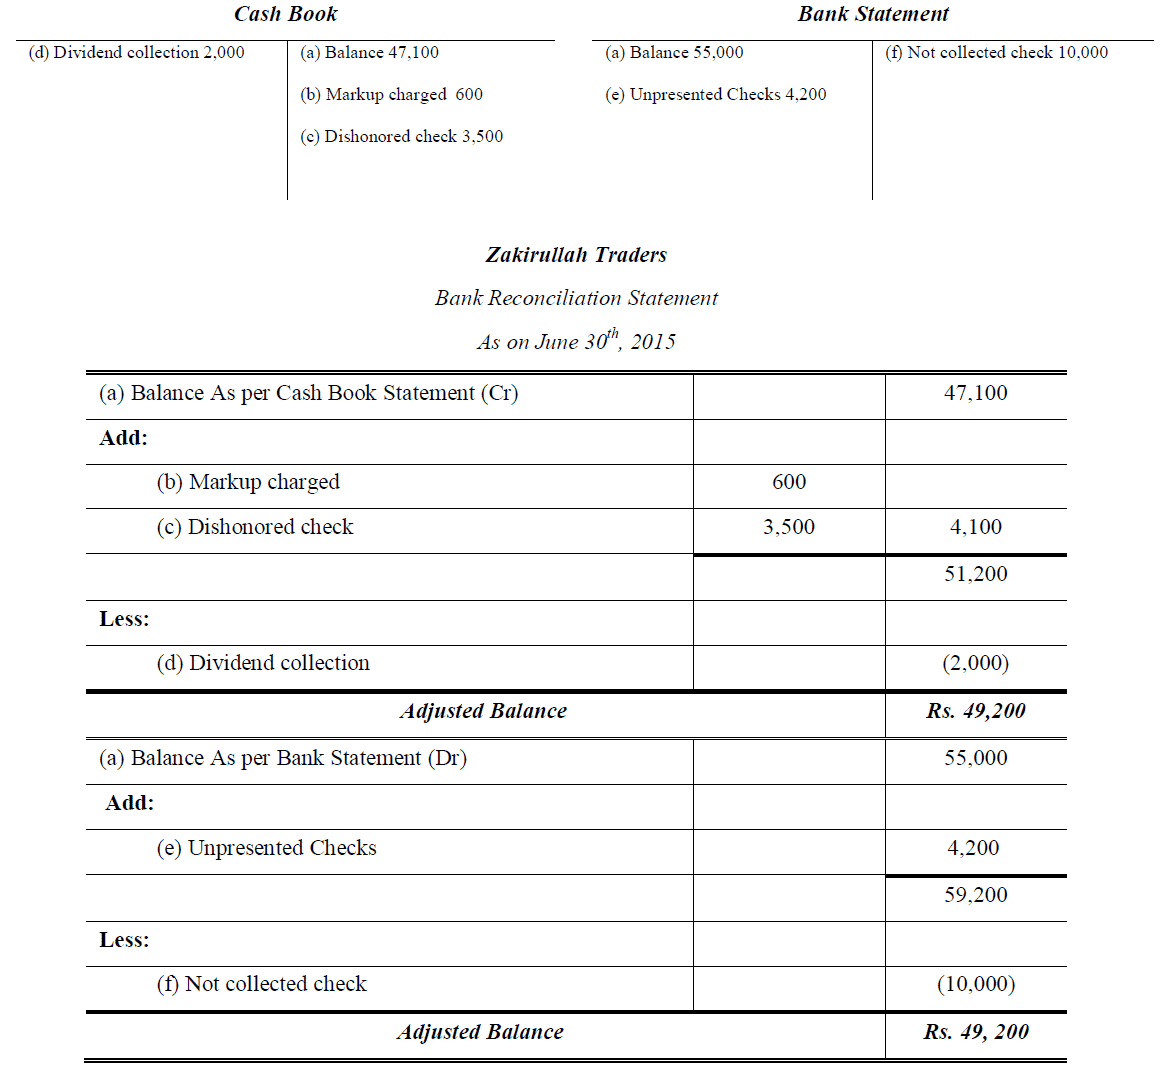 bank reconciliation statement example solution